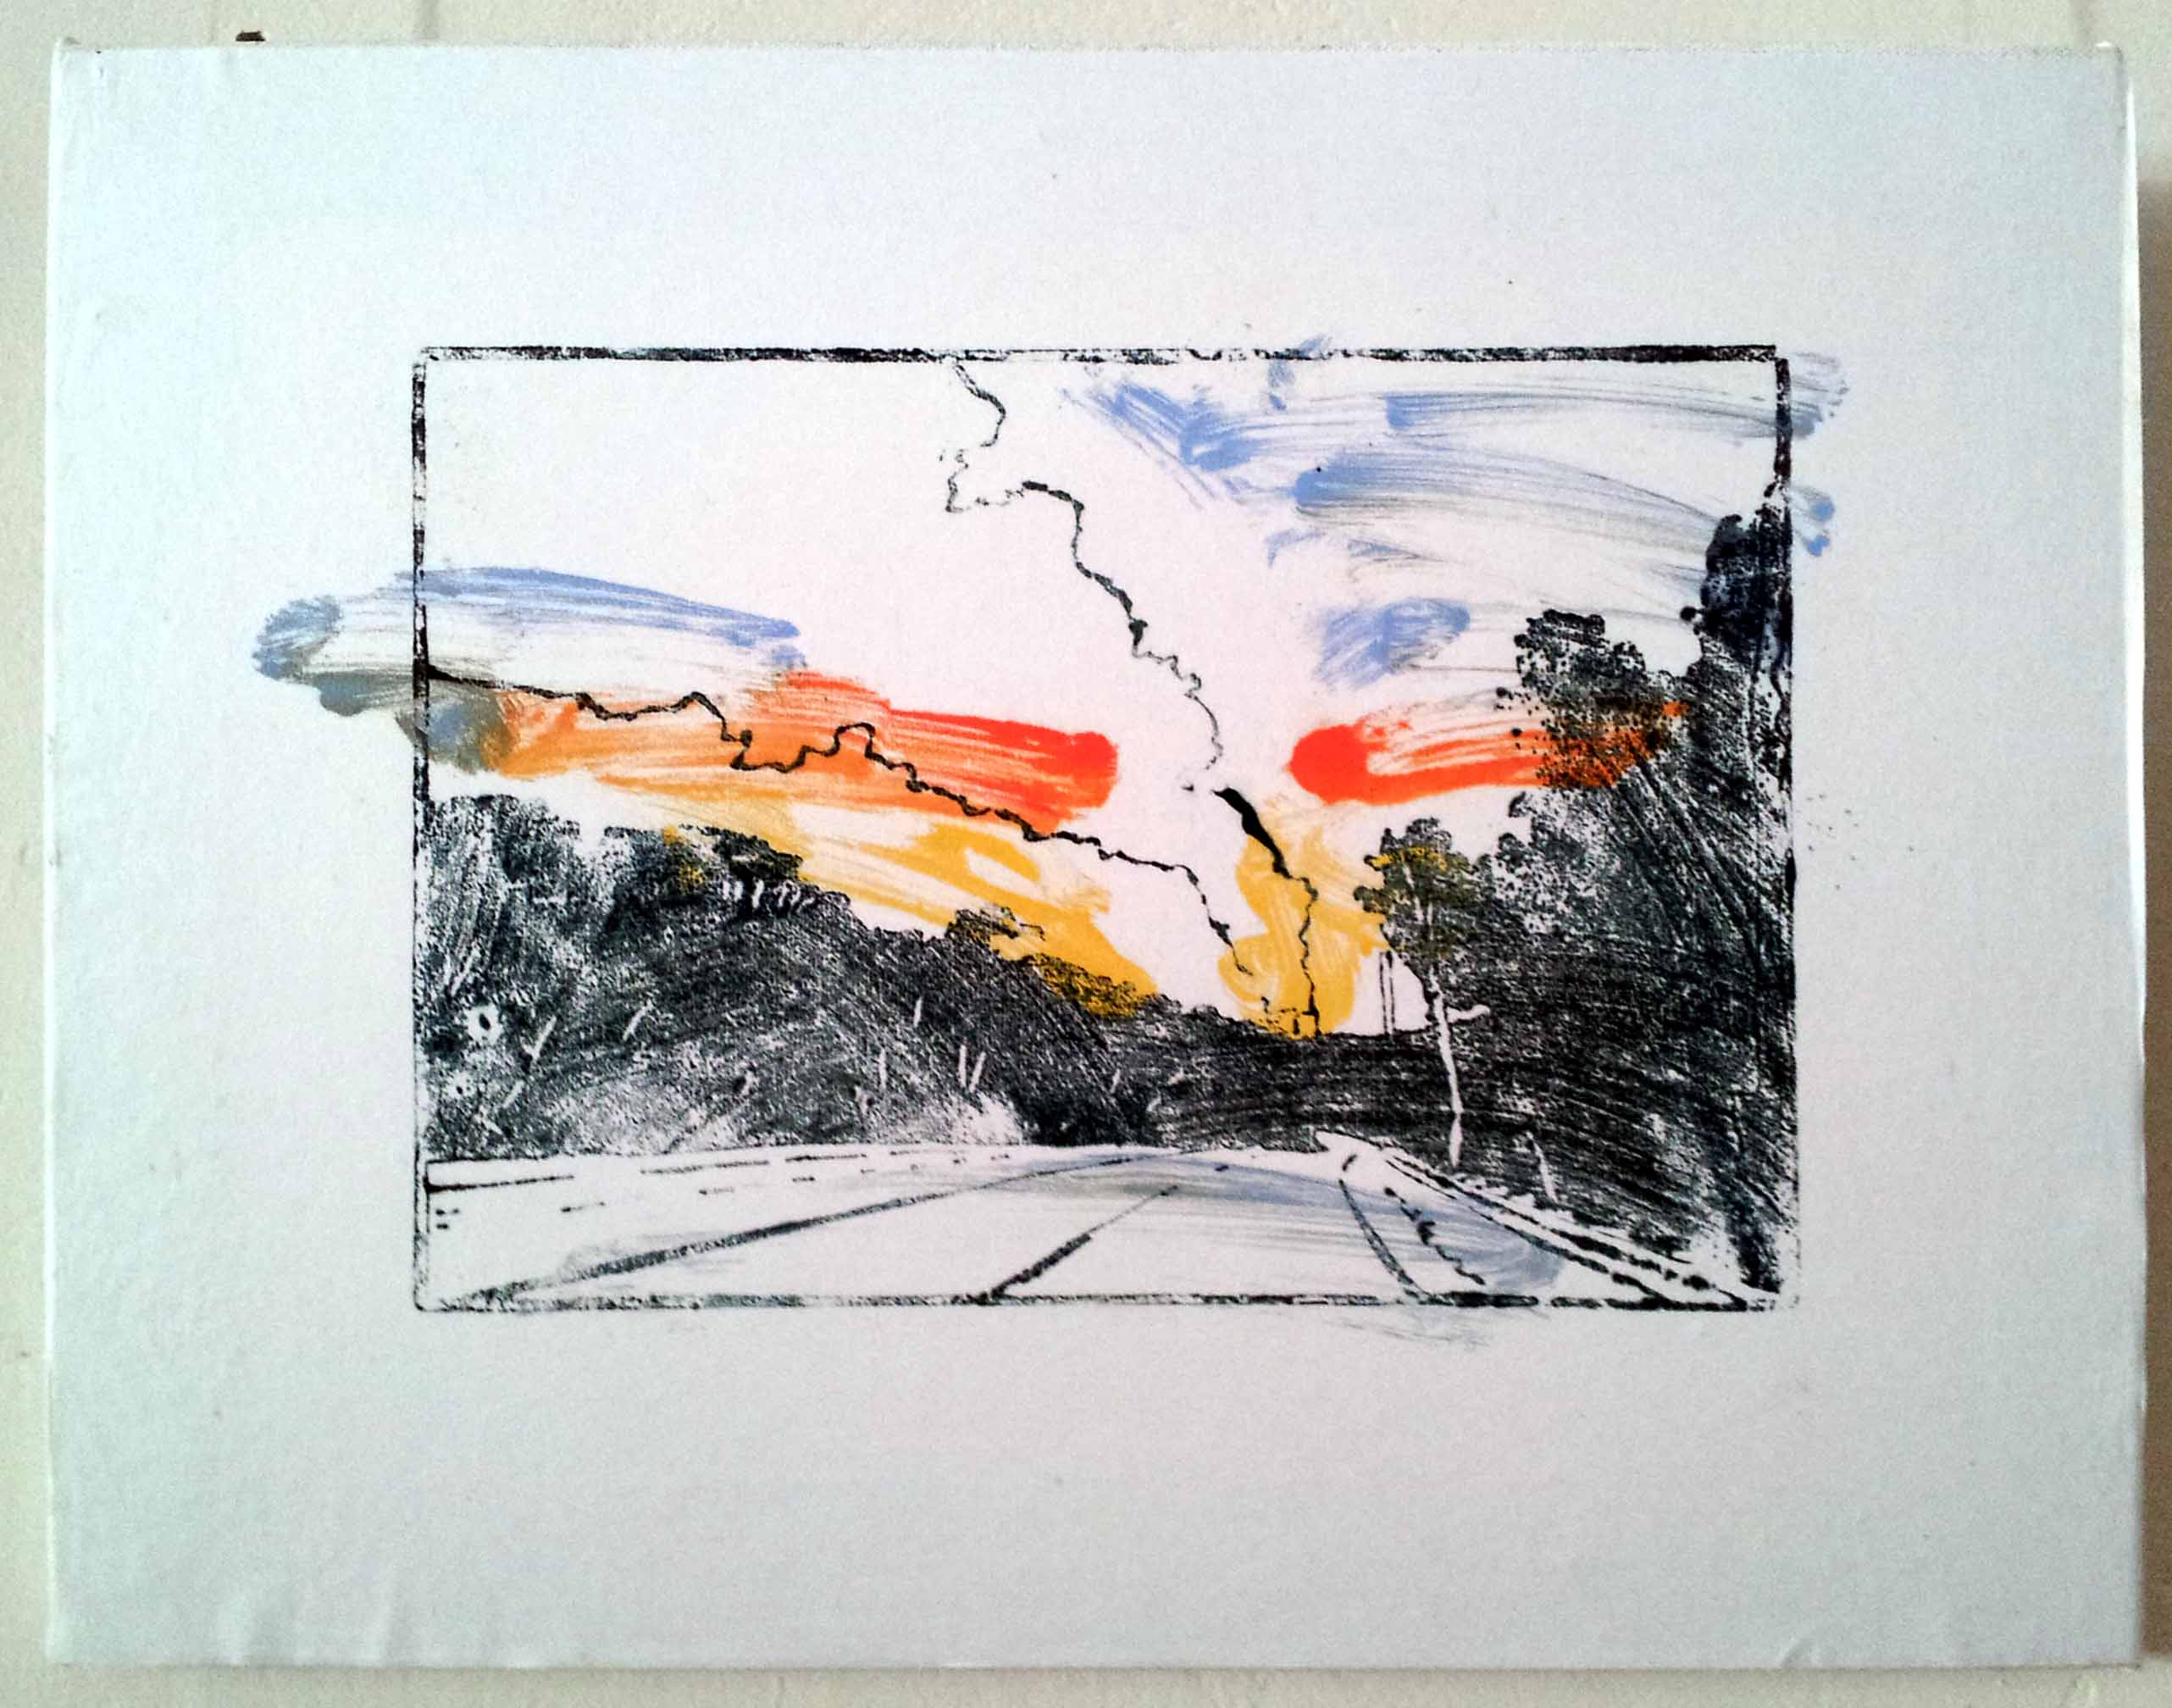 'And the Penny Dropp'd - Point Piper 2' 2014, serial monoprint, oil on woodblock on chinese paper laid on canvas, 35 cm (h) x 45 cm (w)